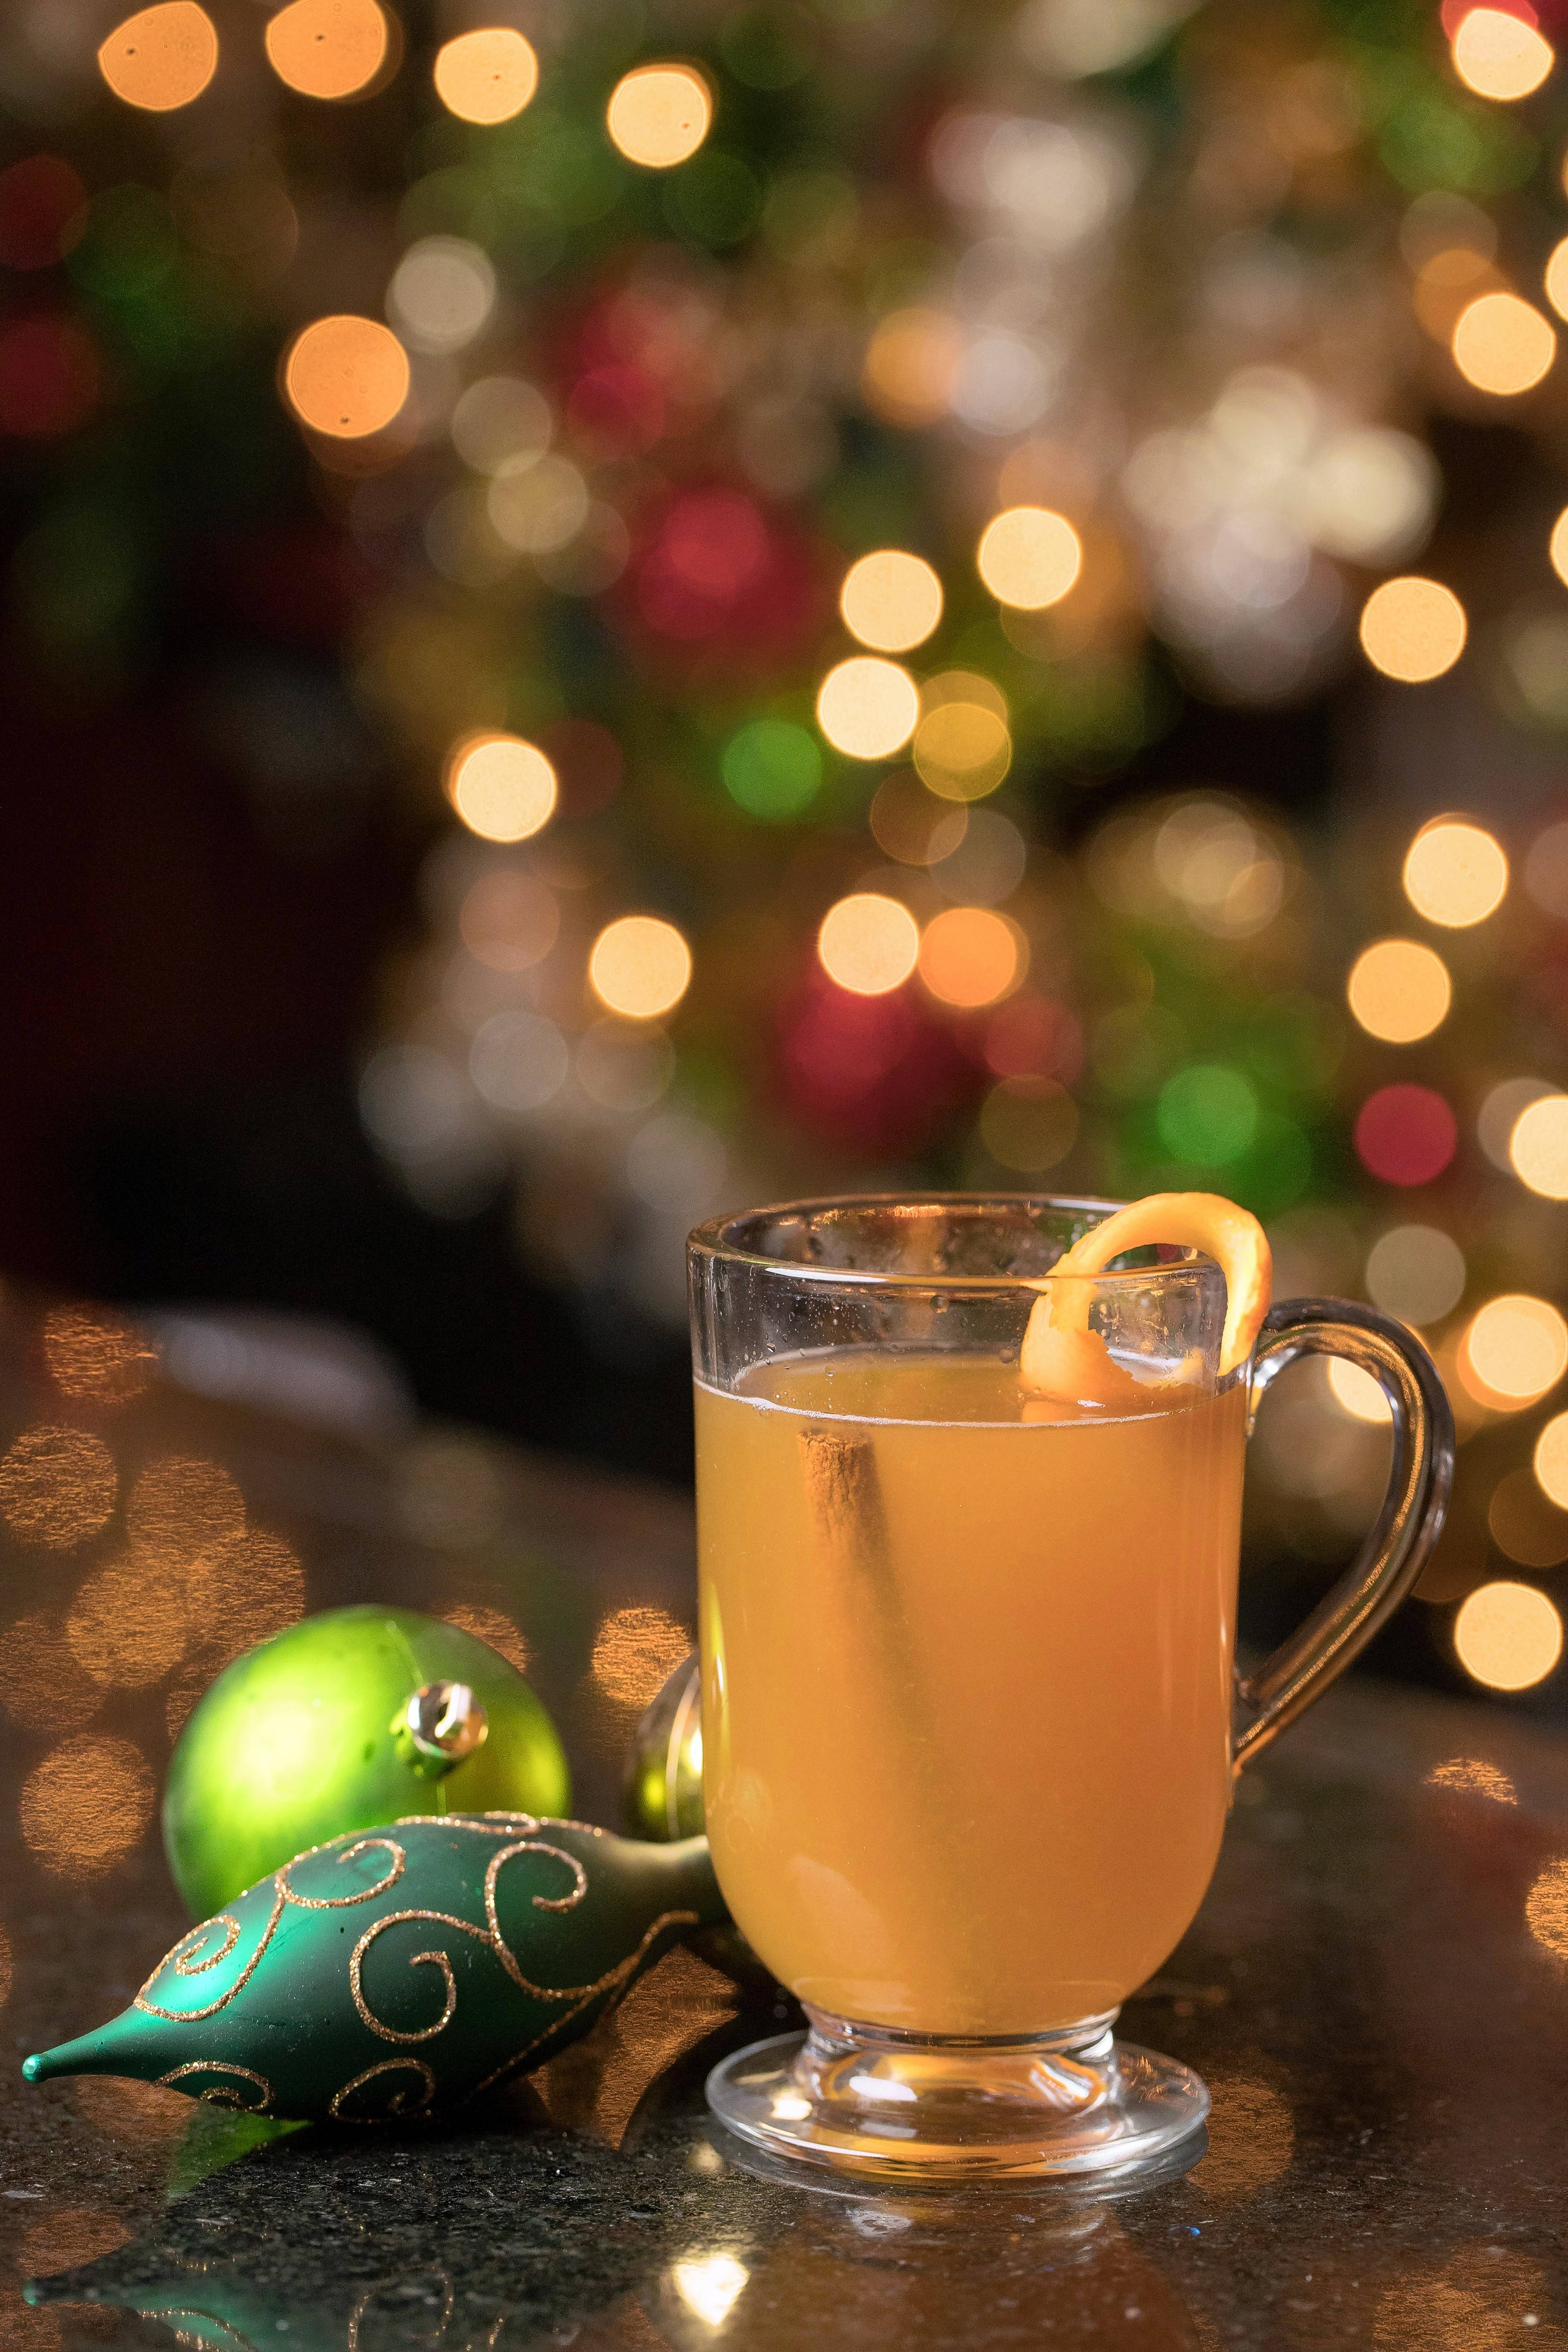 Gene & Georgetti's Spiced Hot Cider is a mix of Captain Morgan Spiced Rum and Chef's Hot Cider that comes garnished with an orange peel.